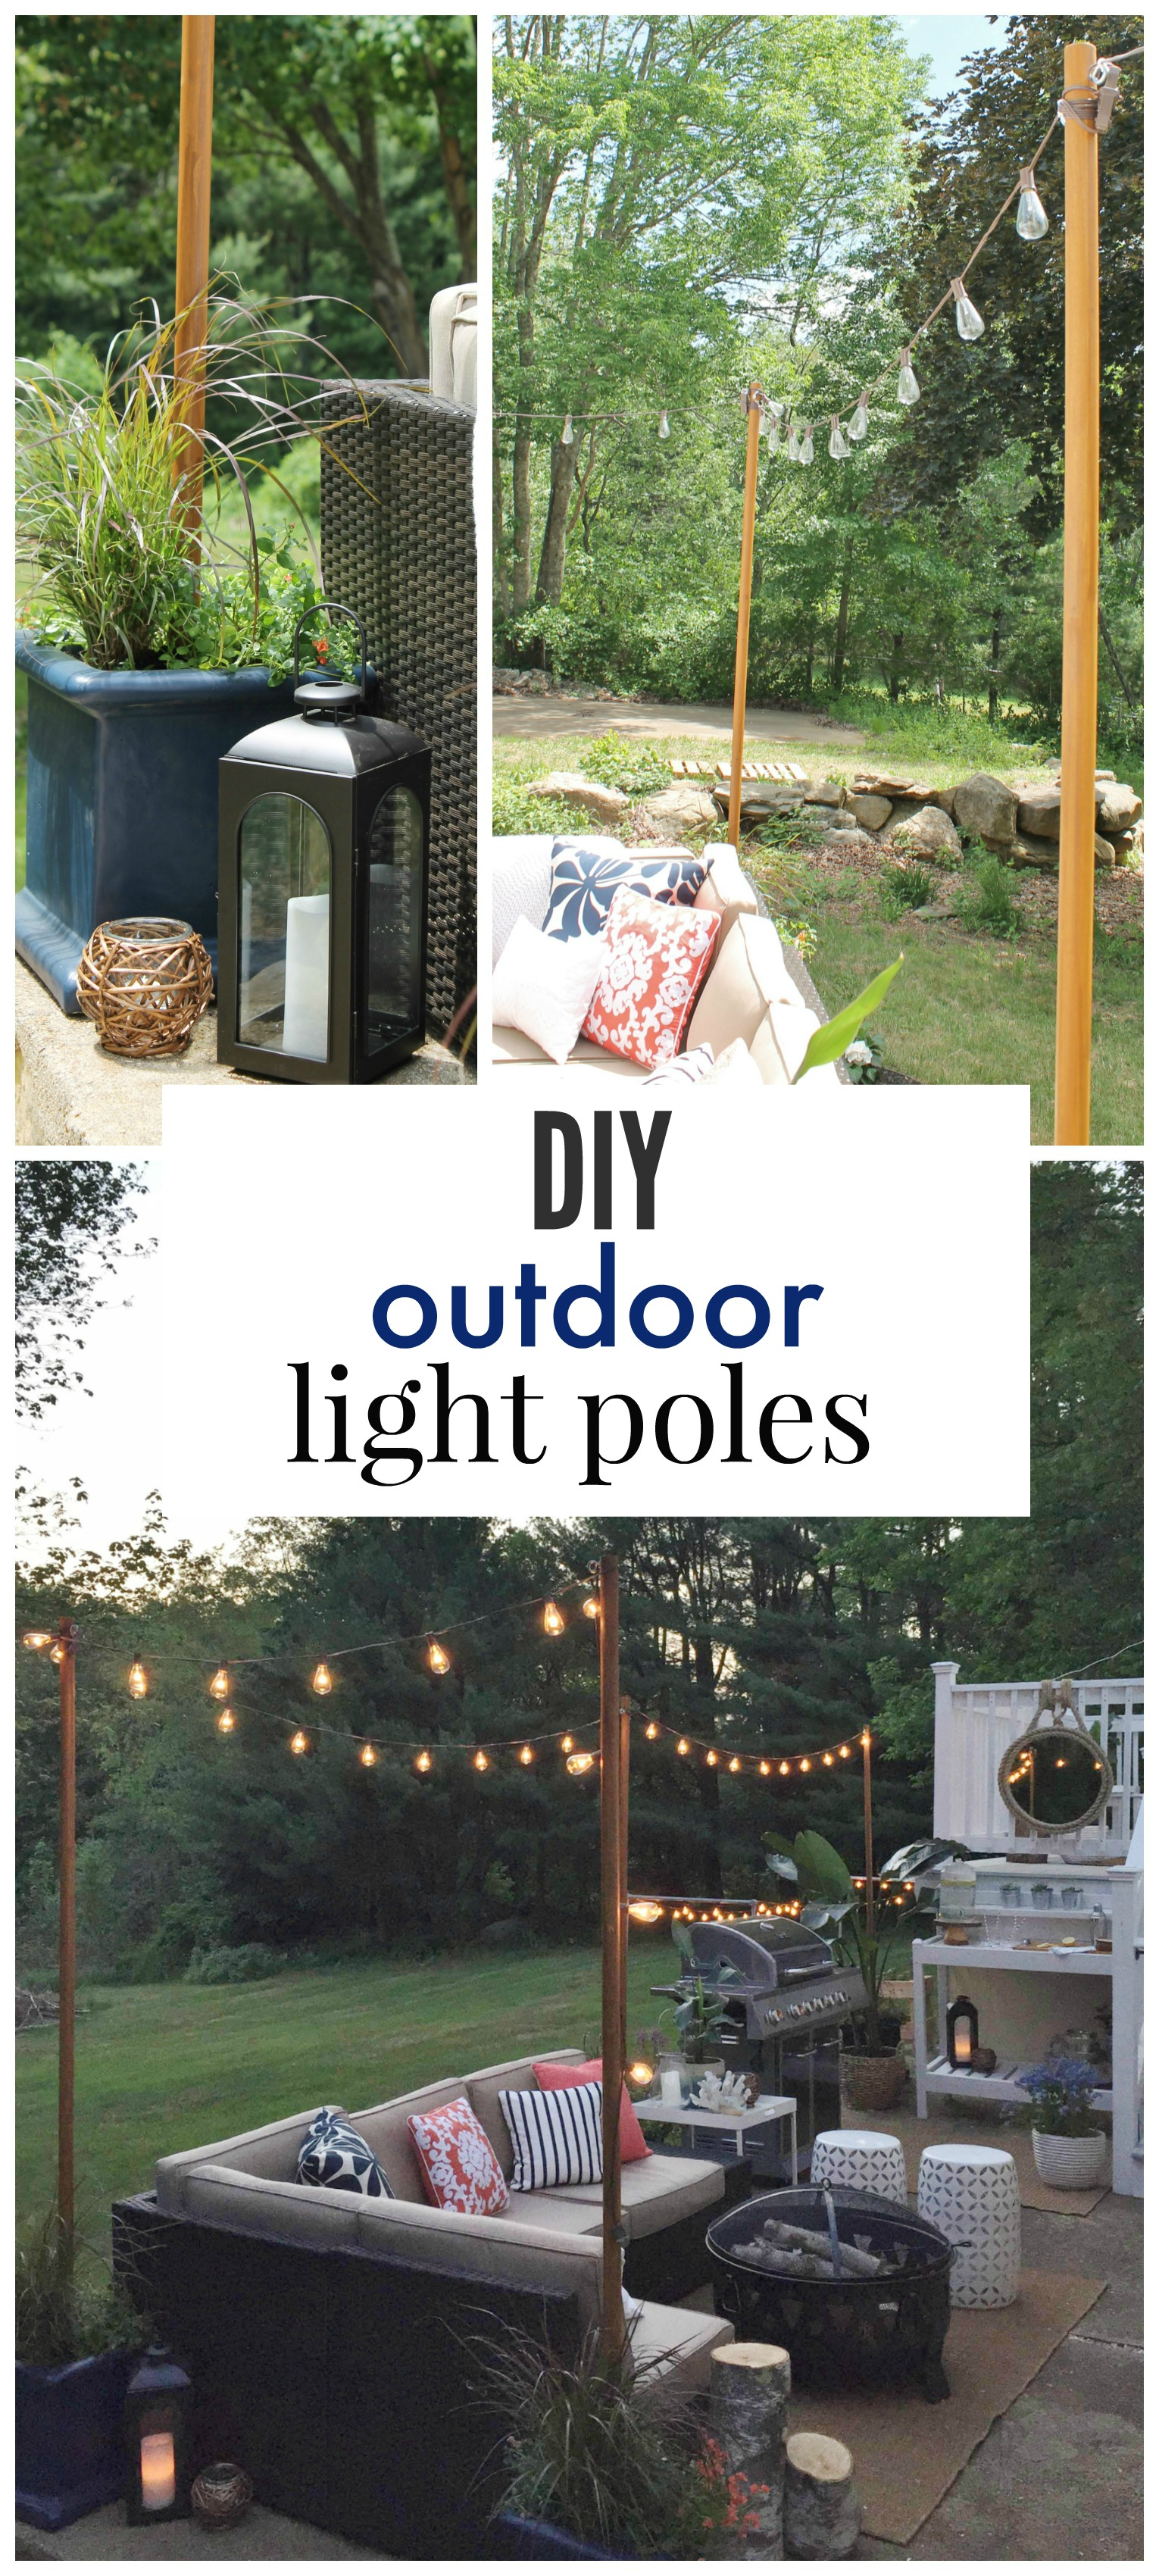 DIY Outdoor Light Poles - City Farmhouse on homemade pipe bumper, homemade deer horn lamps, homemade tobacco water, homemade pipe light, homemade pipe pen, homemade pipe bowl, homemade pipe bar, homemade pipe table, homemade pipe wood, homemade pipe car, homemade pipe shade, homemade pipe stand, homemade pipe plug, homemade pipe screen, homemade pipe stove,